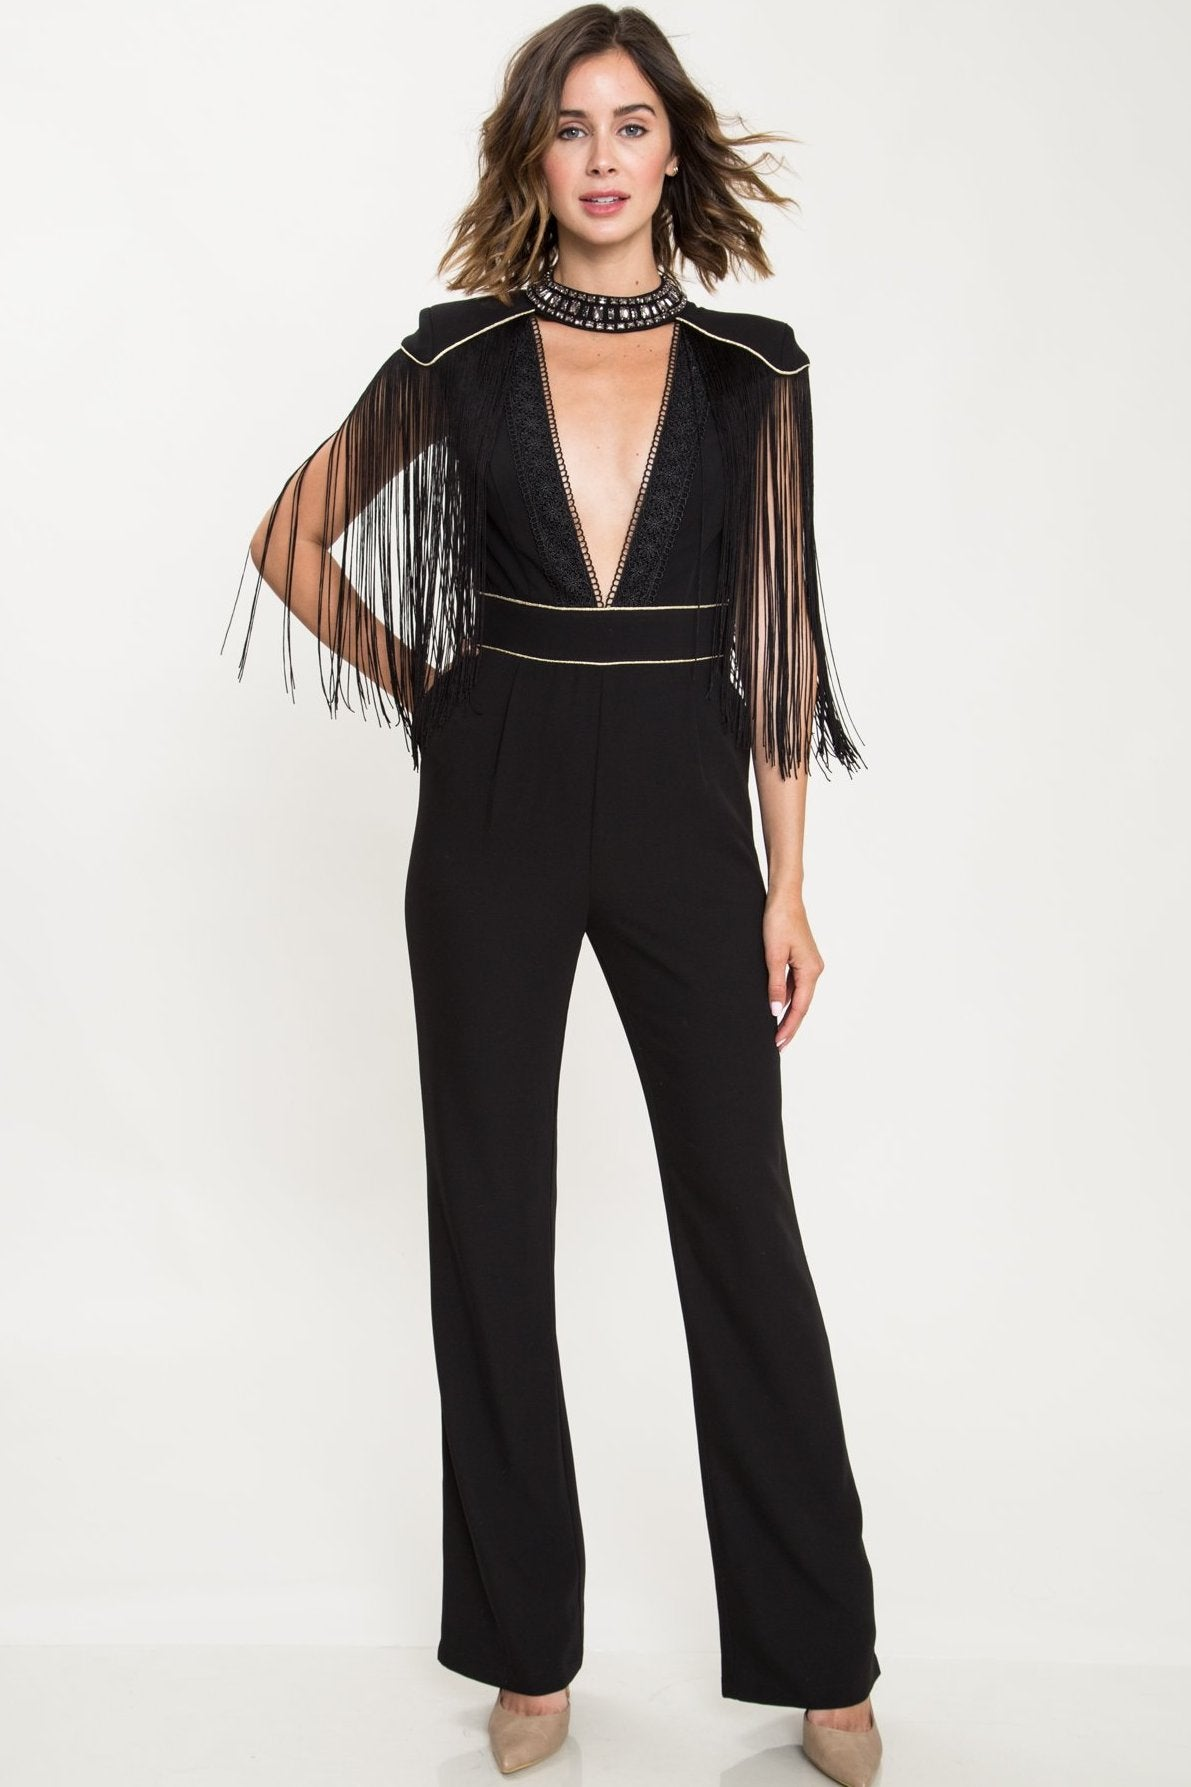 All Night Dancing Fringe Jumpsuit - Geegeebae